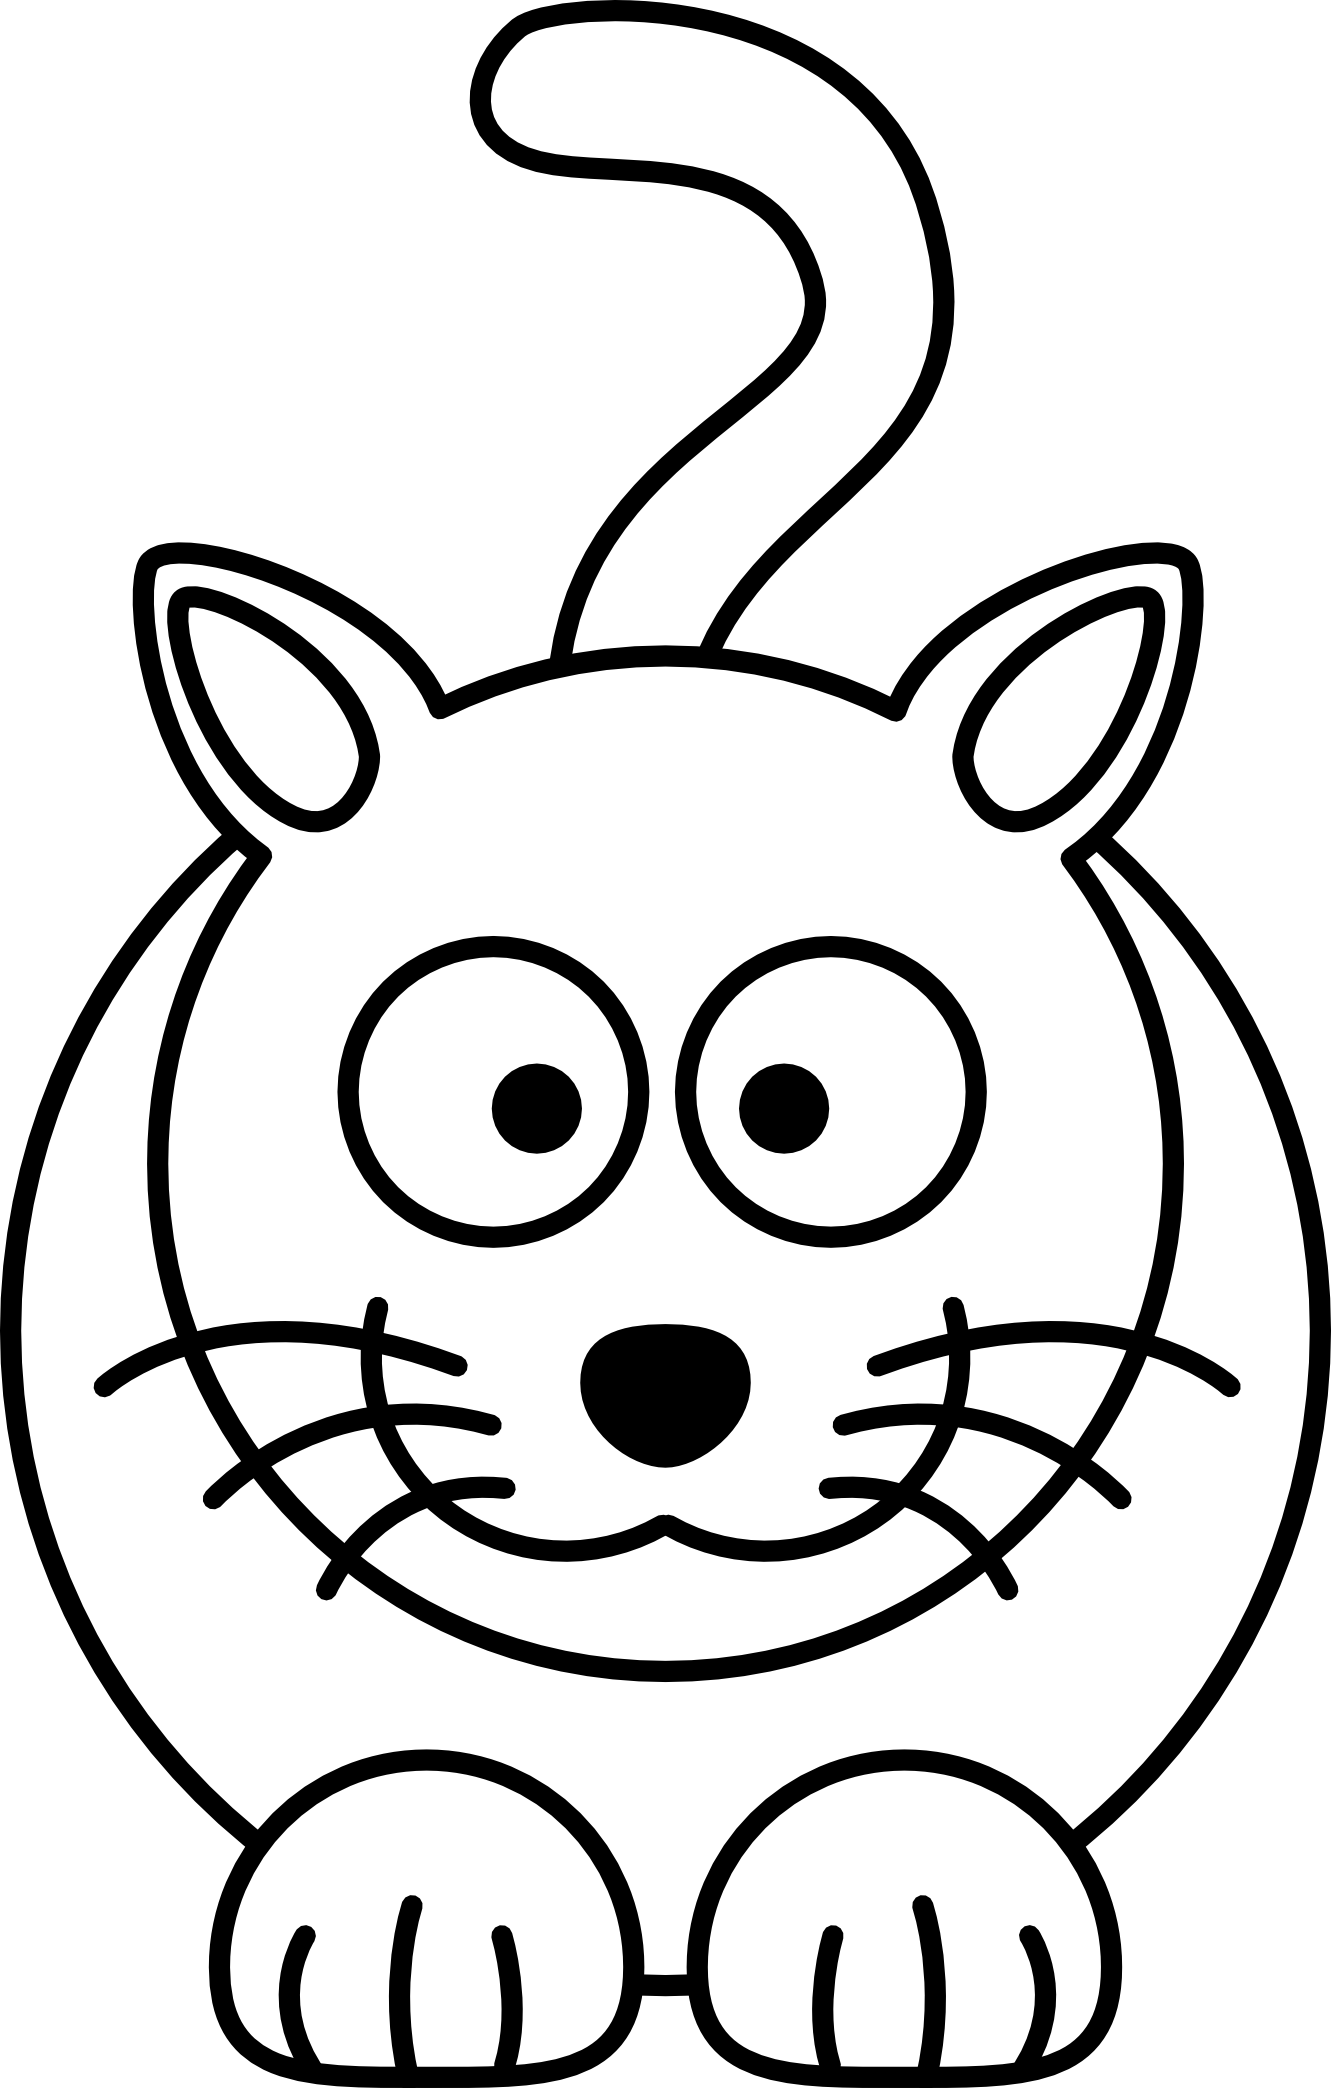 Line Art For Coloring : Free simple line drawings art coloring book